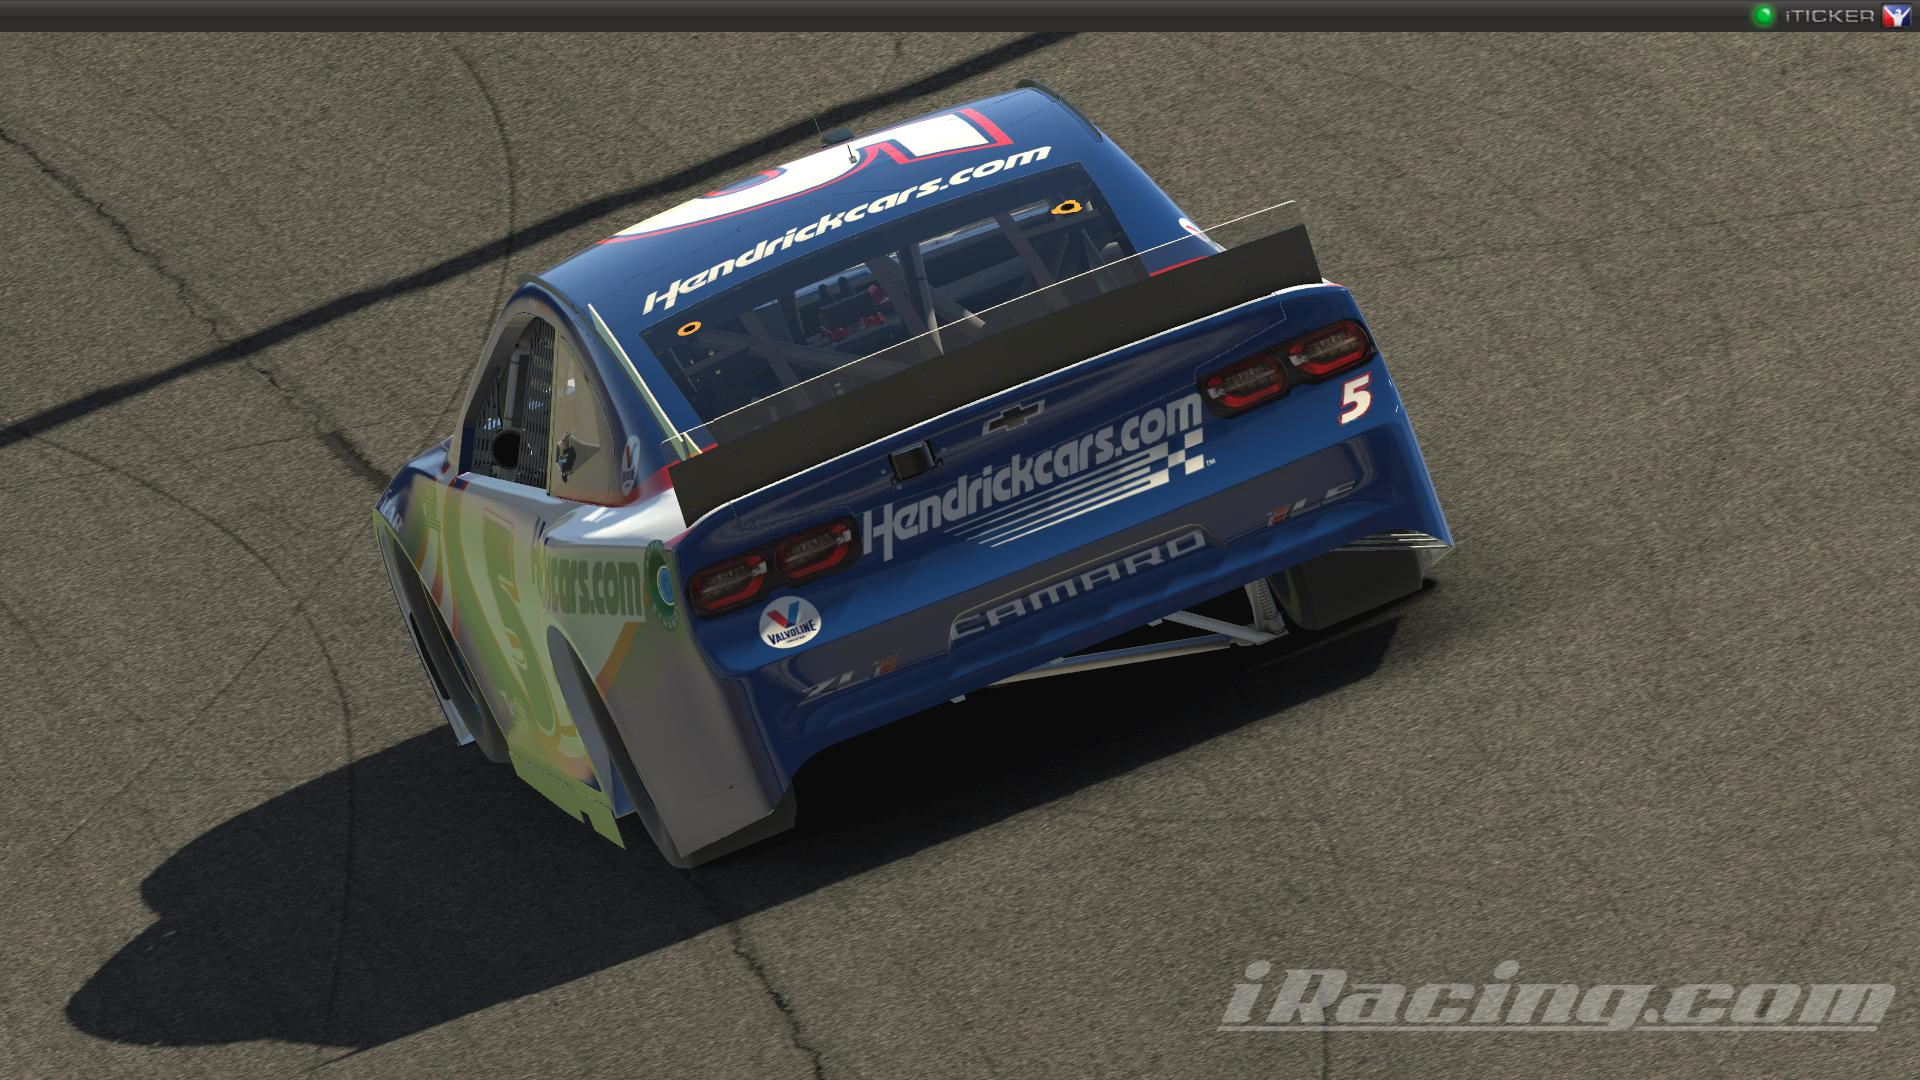 Preview of Kyle Larson #5 Hendrickcars.com 2021 NASCAR Cup Series by Ryan Broderick